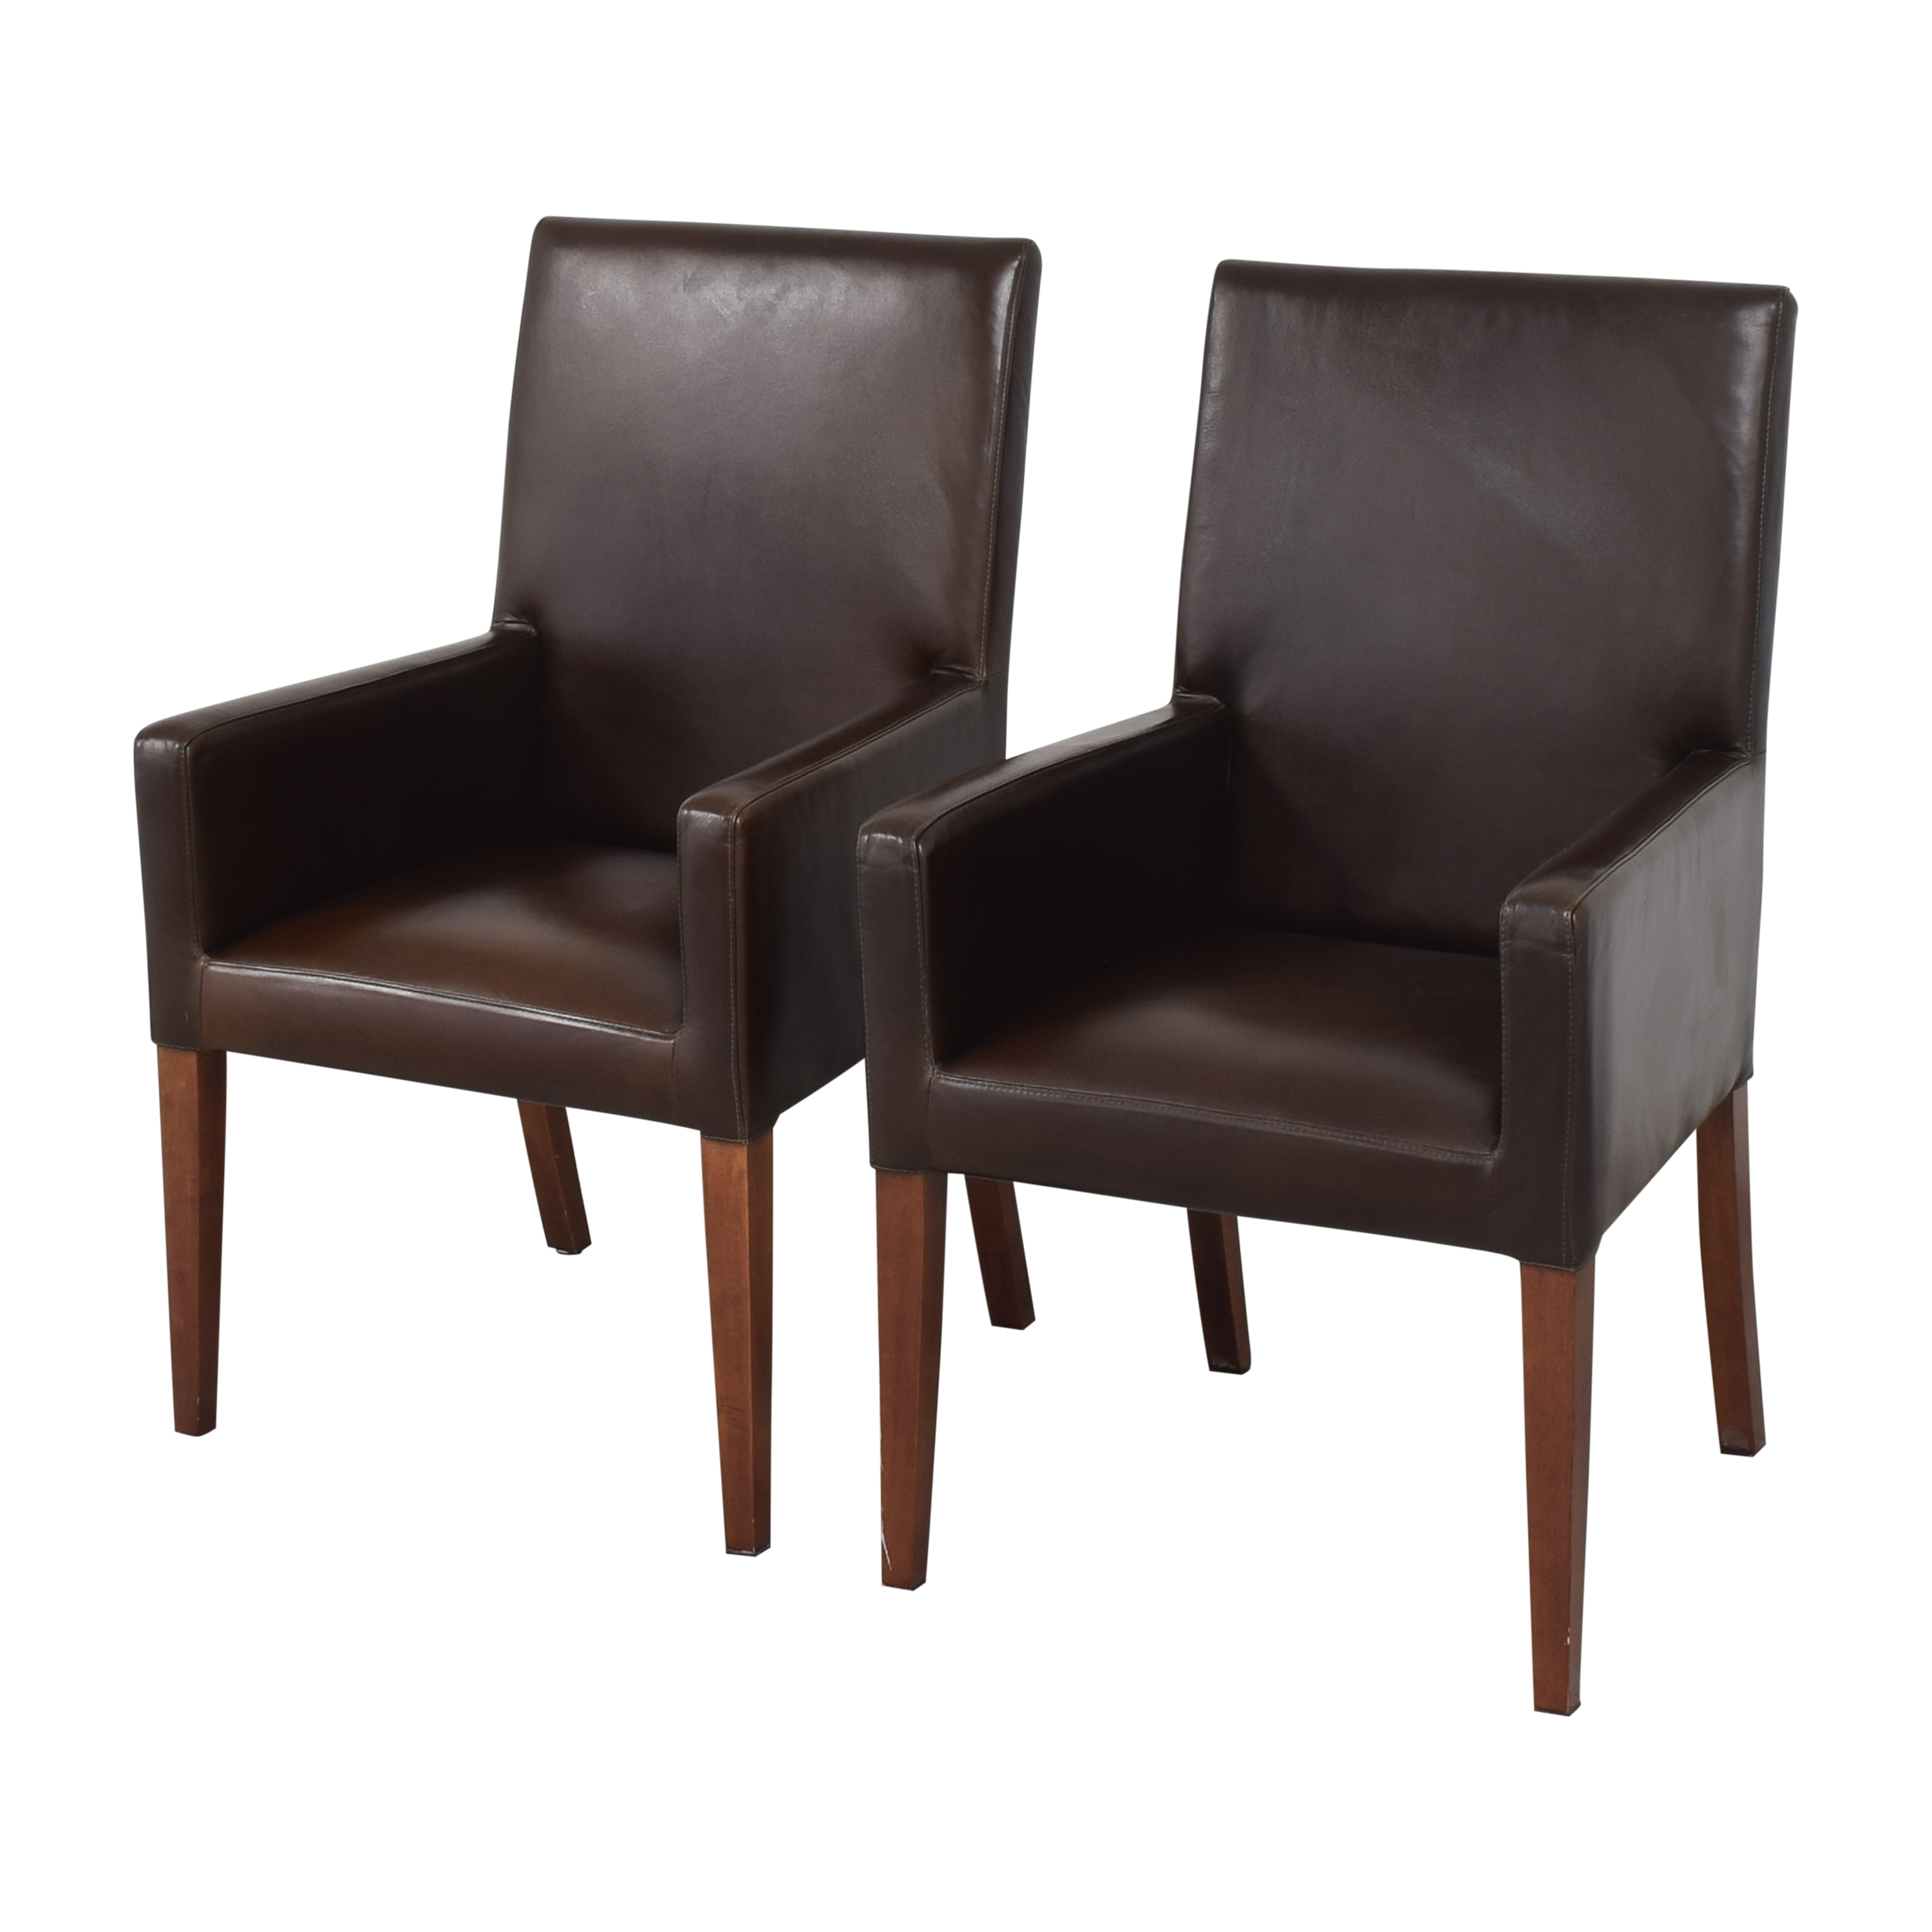 Pottery Barn Grayson Dining Arm Chairs / Dining Chairs